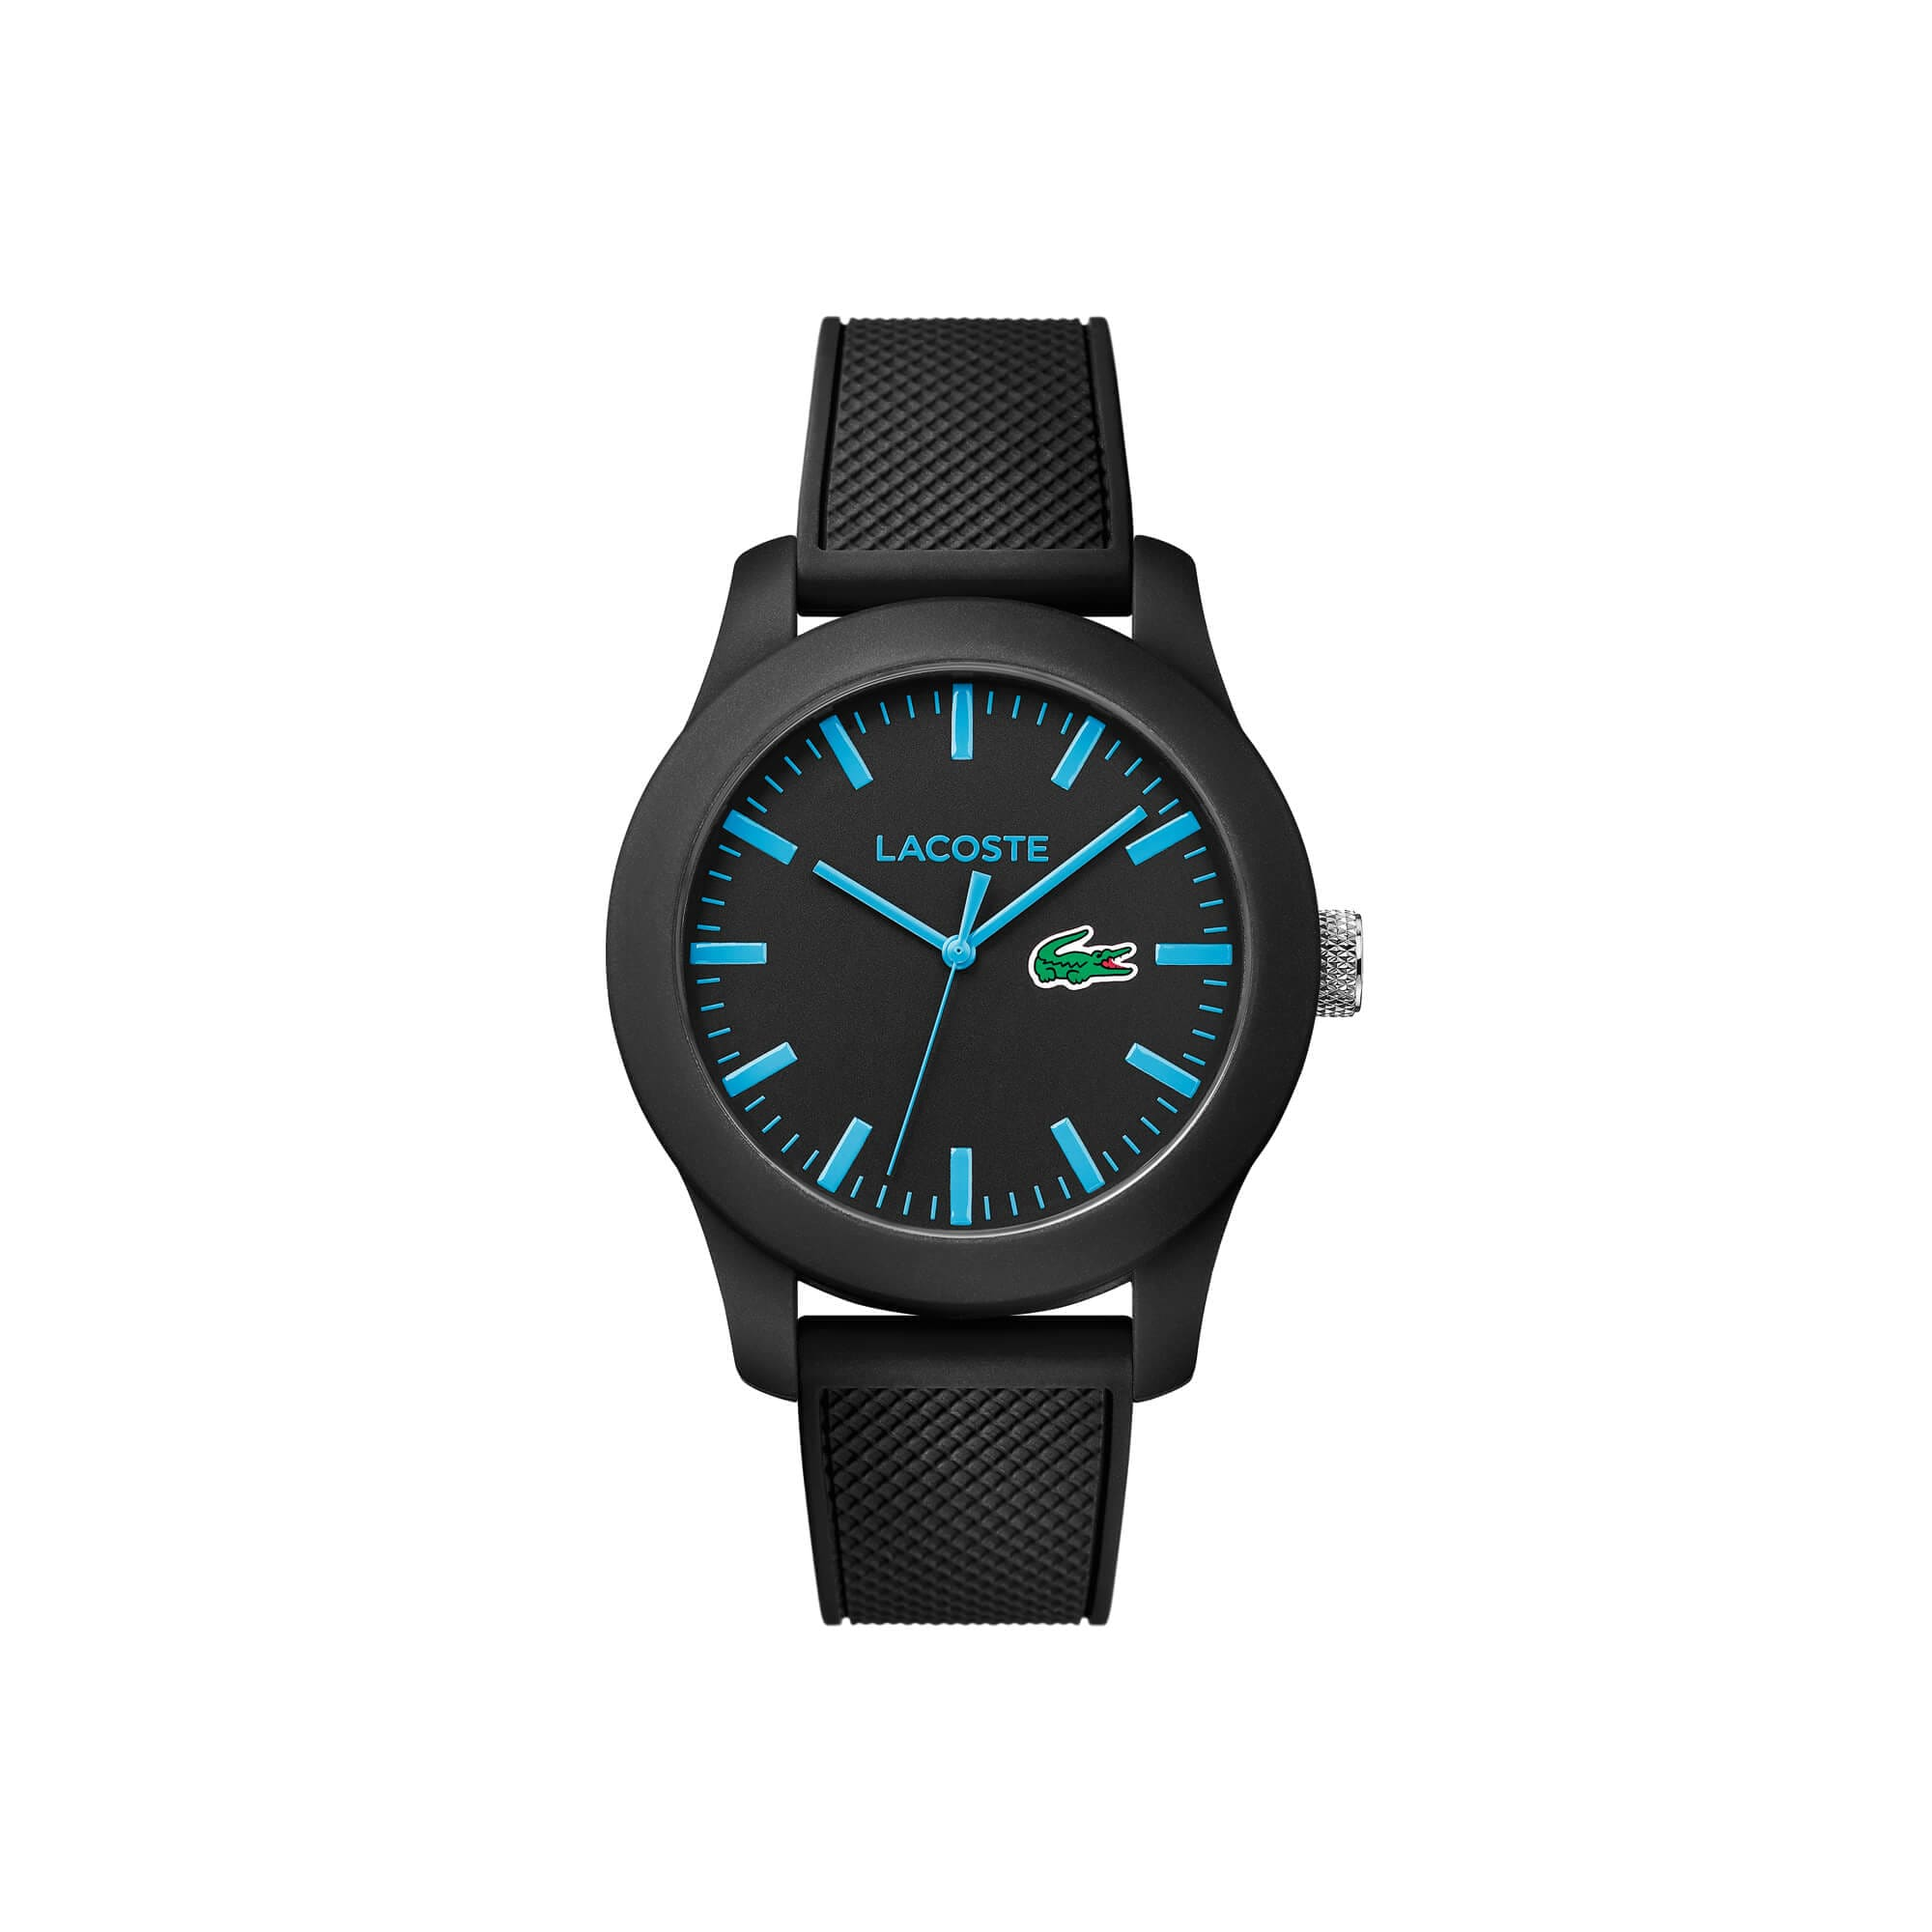 Watch Lacoste 12.12 with silicone strap